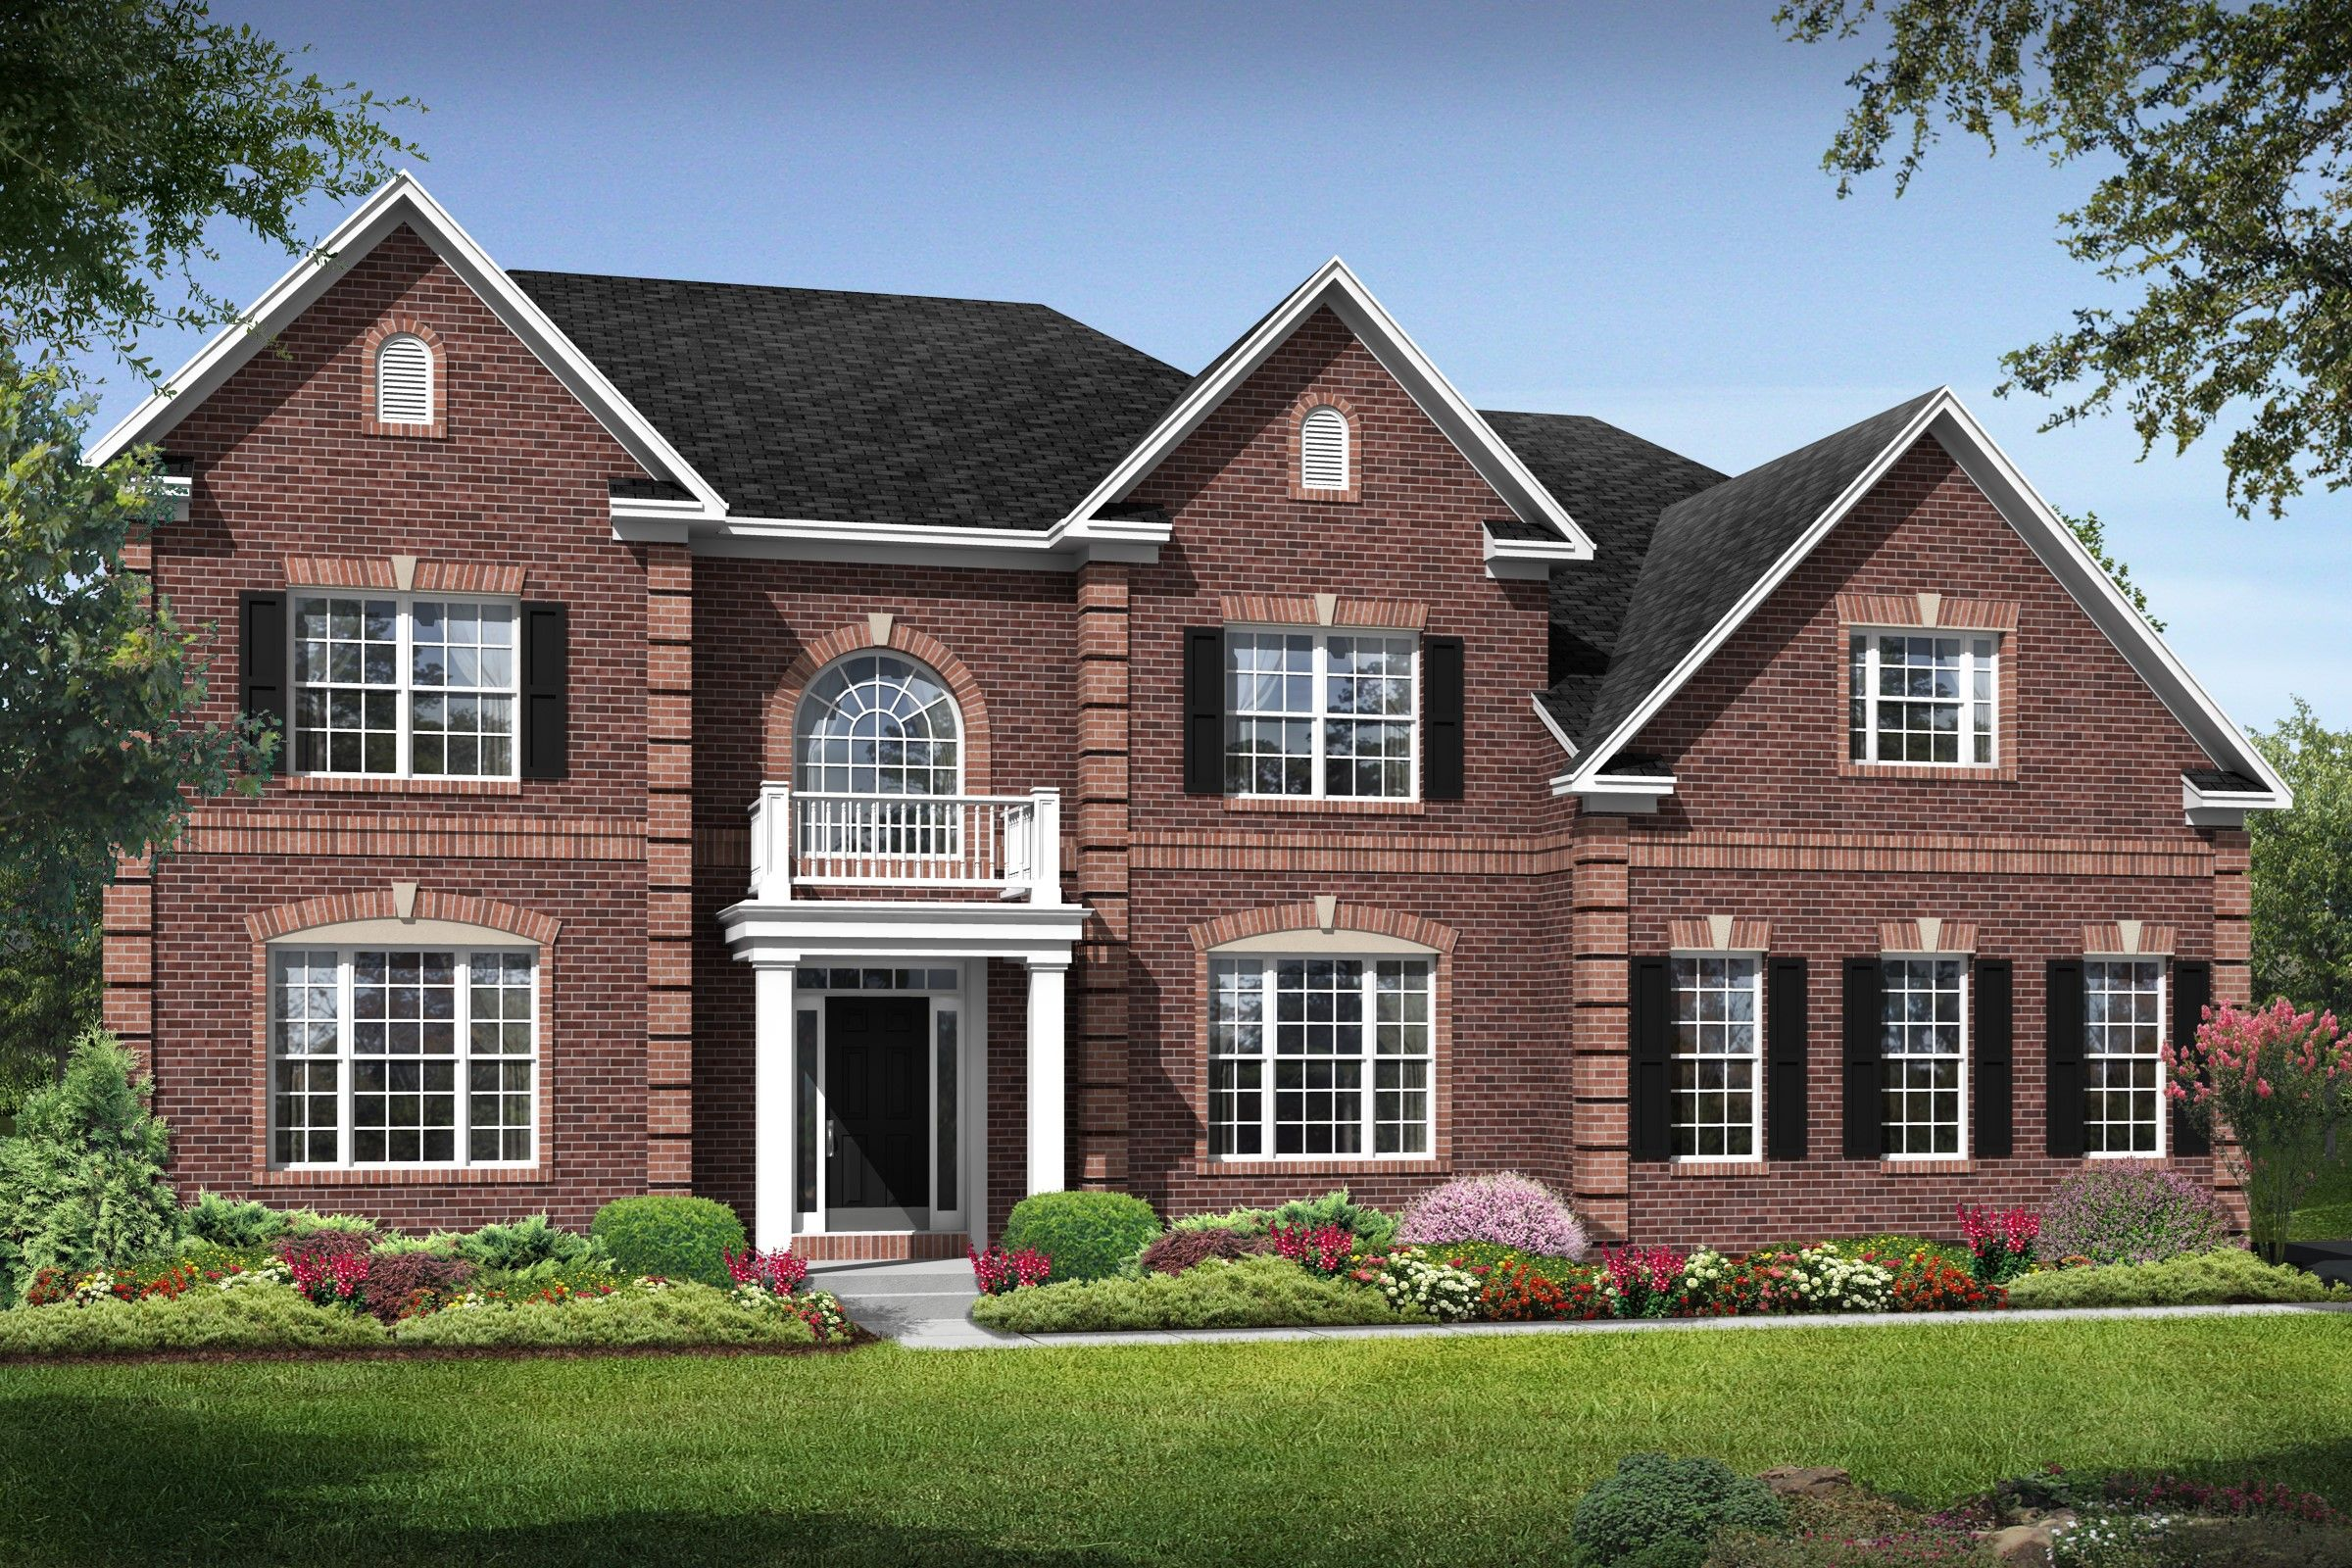 Single Family for Sale at The Estates At Cedar Lane - Manhattan 101 Patterson Court Middletown, Delaware 19709 United States